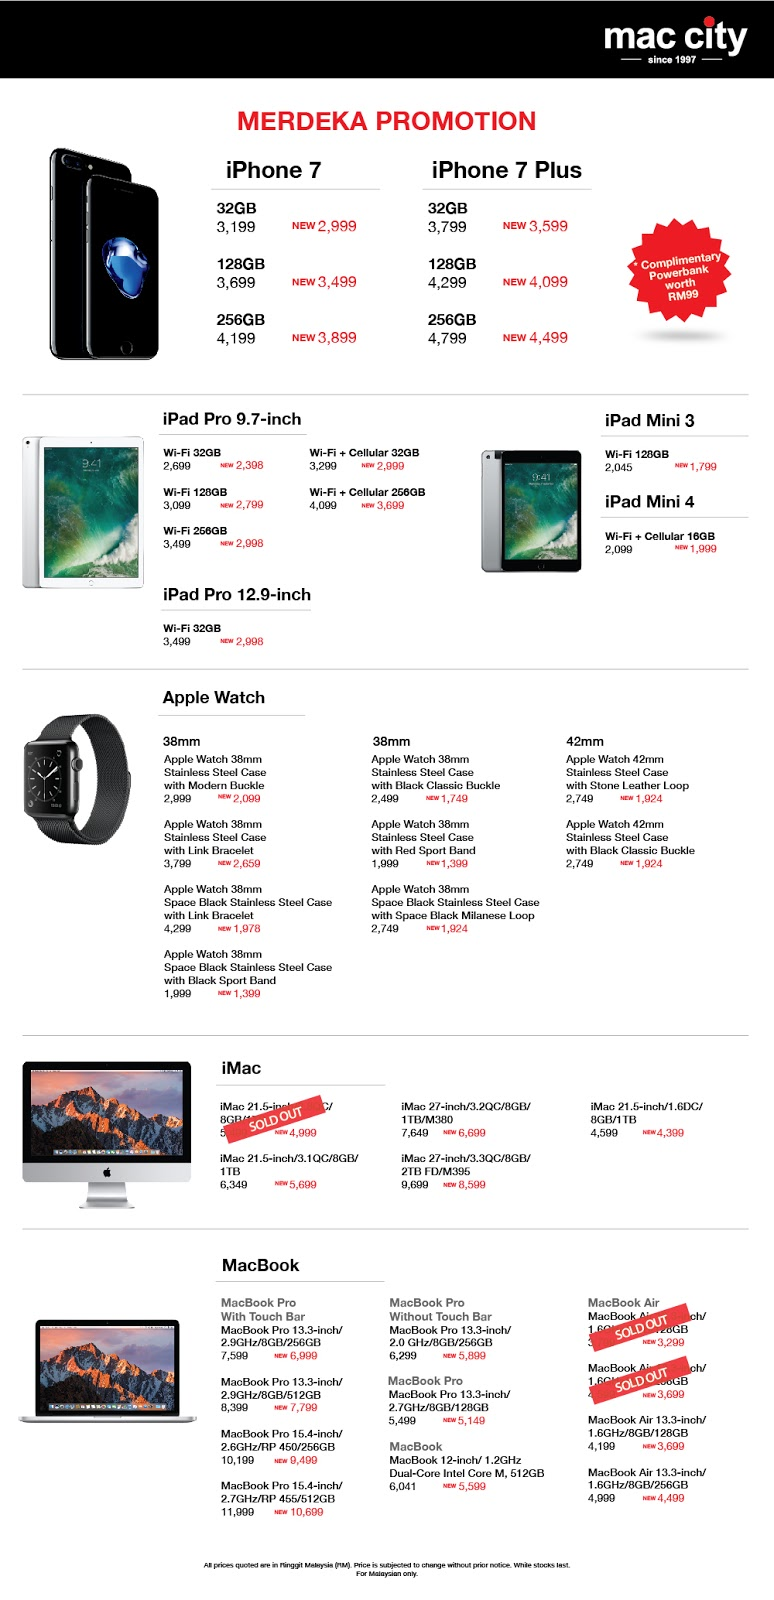 Mac City Malaysia Apple Products Price Reduction Merdeka Sale Discount Offer Promo